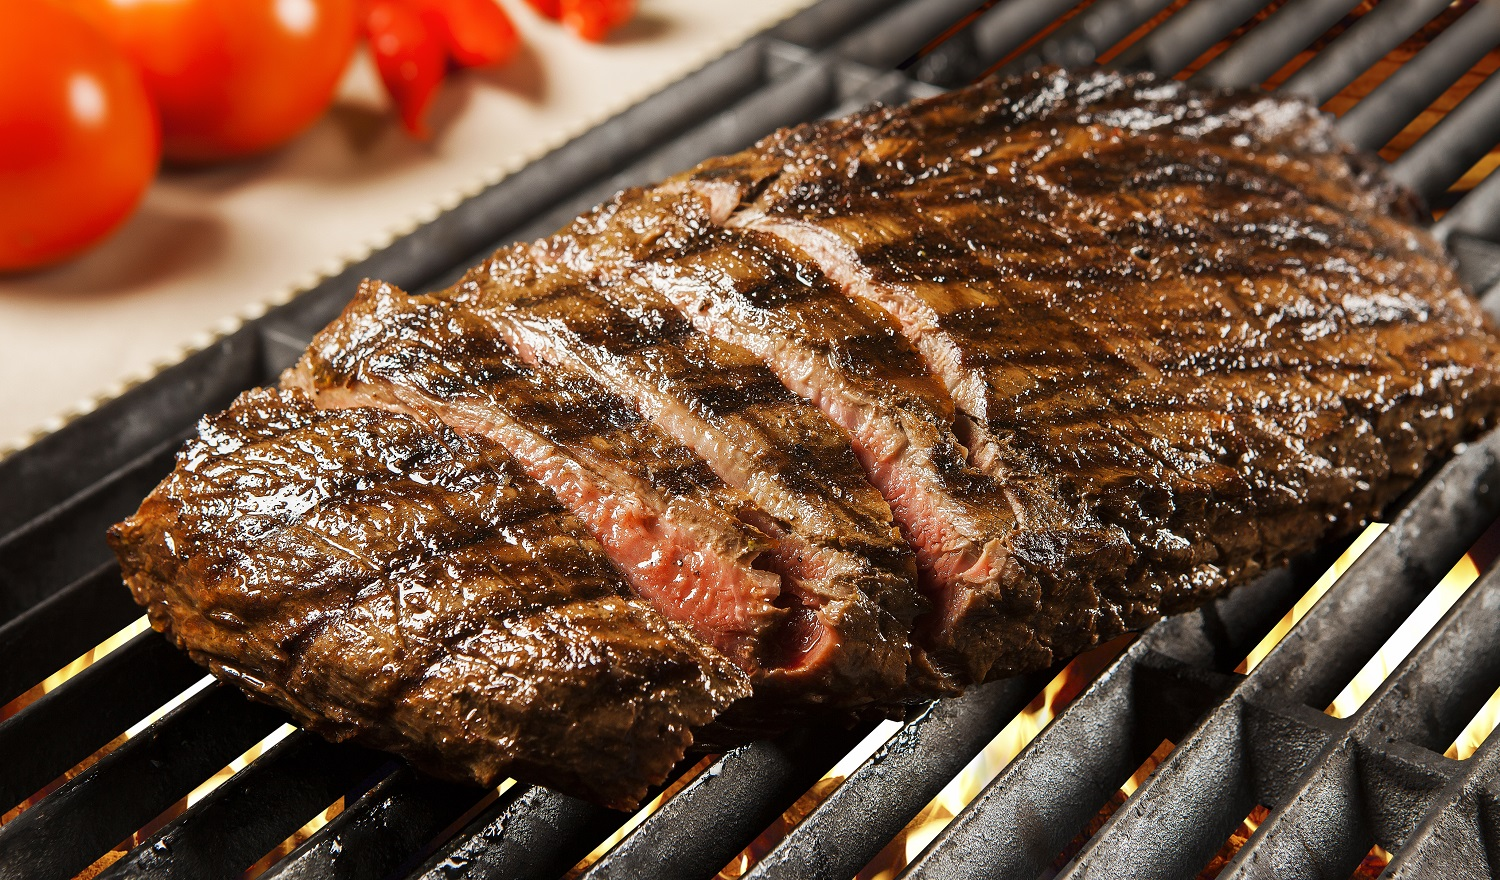 Delicious grilled meat over the coals on a barbecue. Filet.